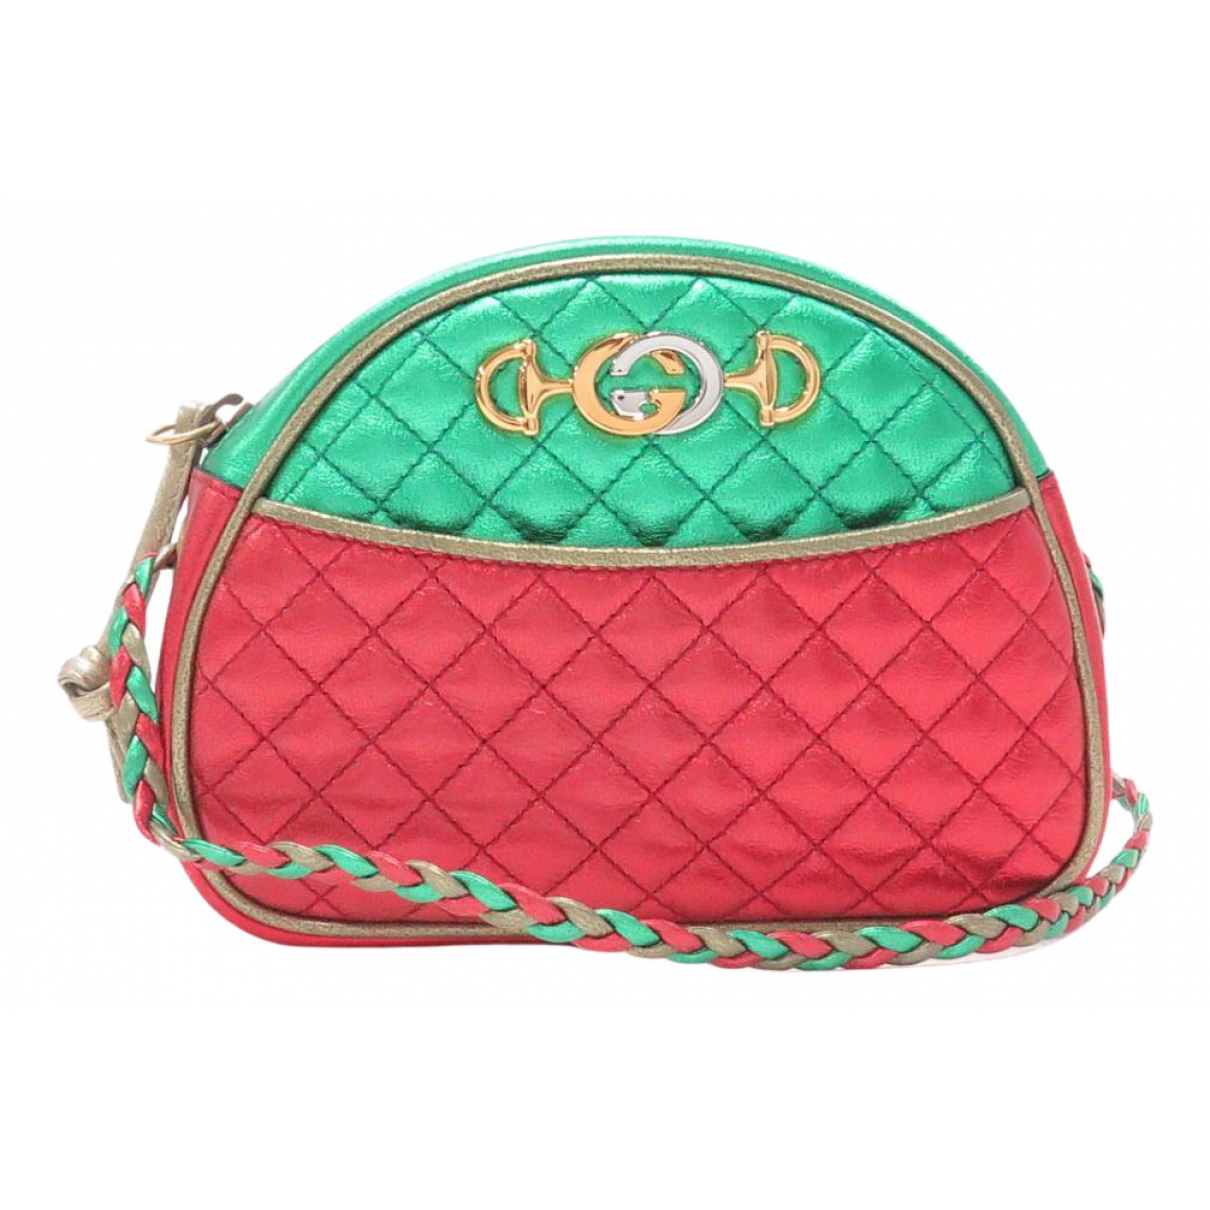 Gucci Laminated Multicolour Leather handbag for Women N